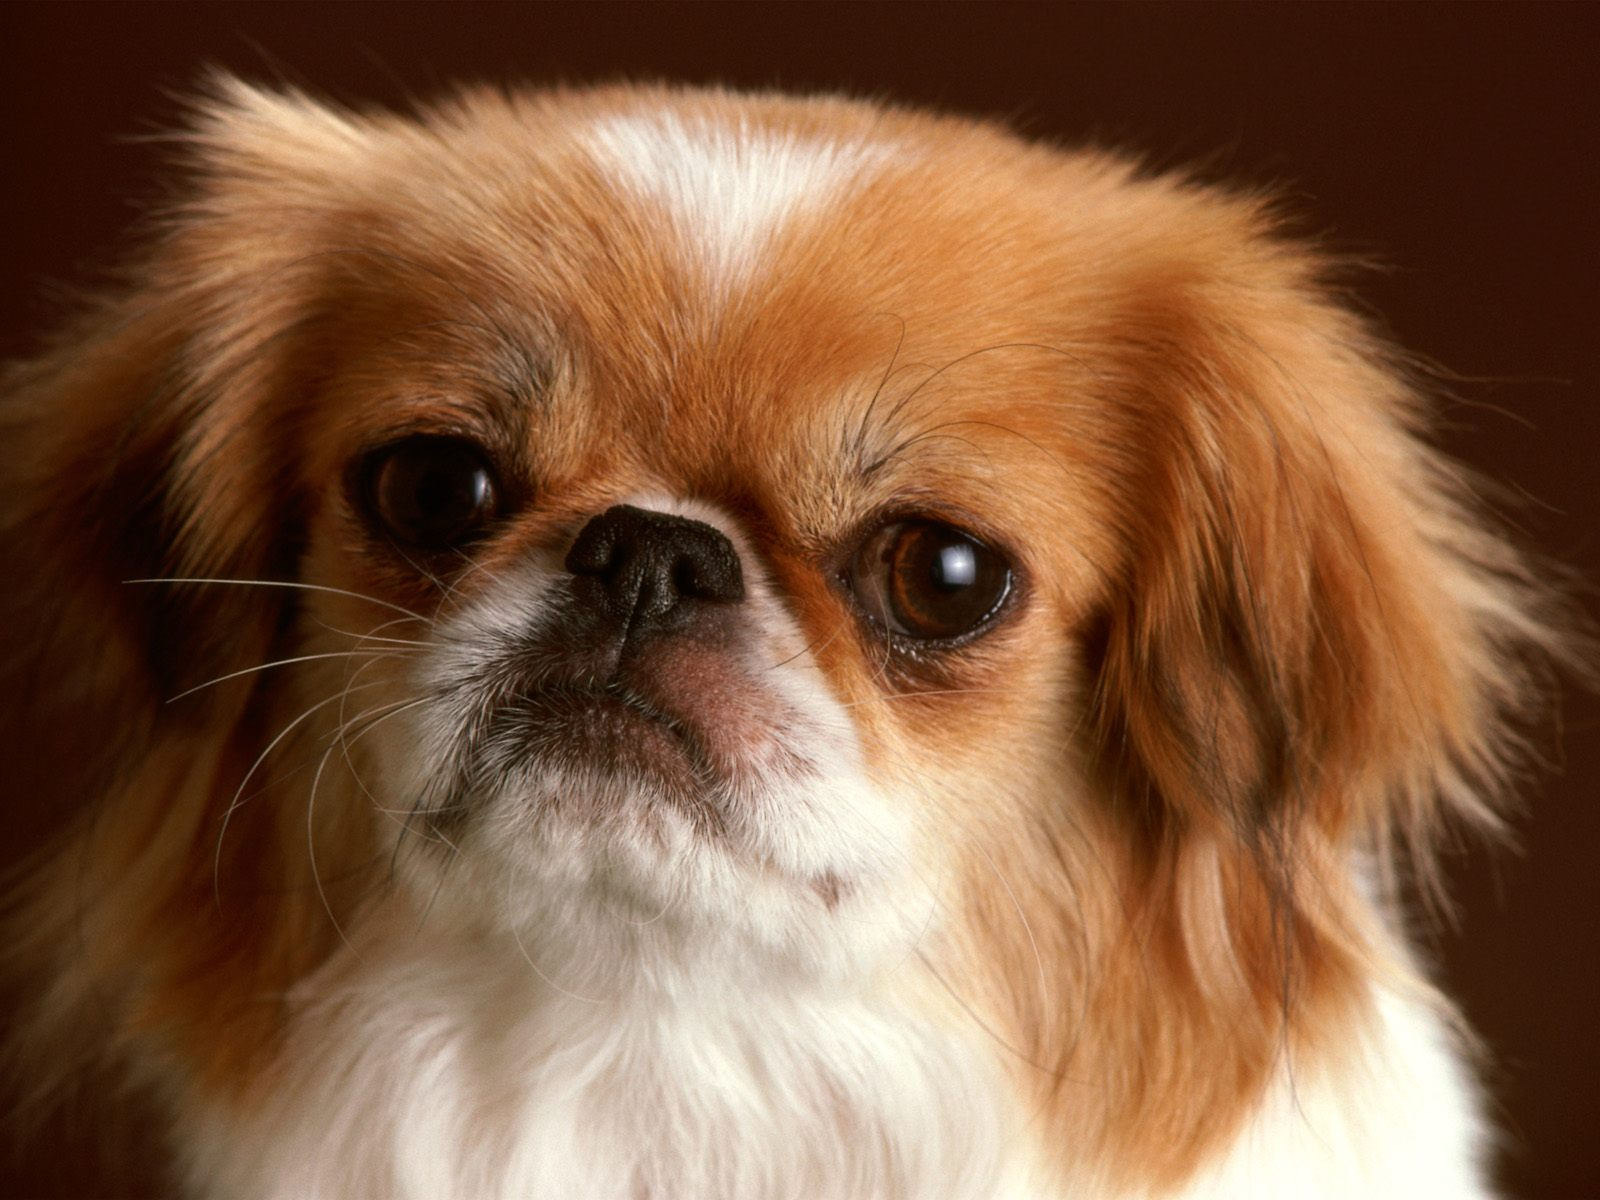 images of baby dogs - photo #25